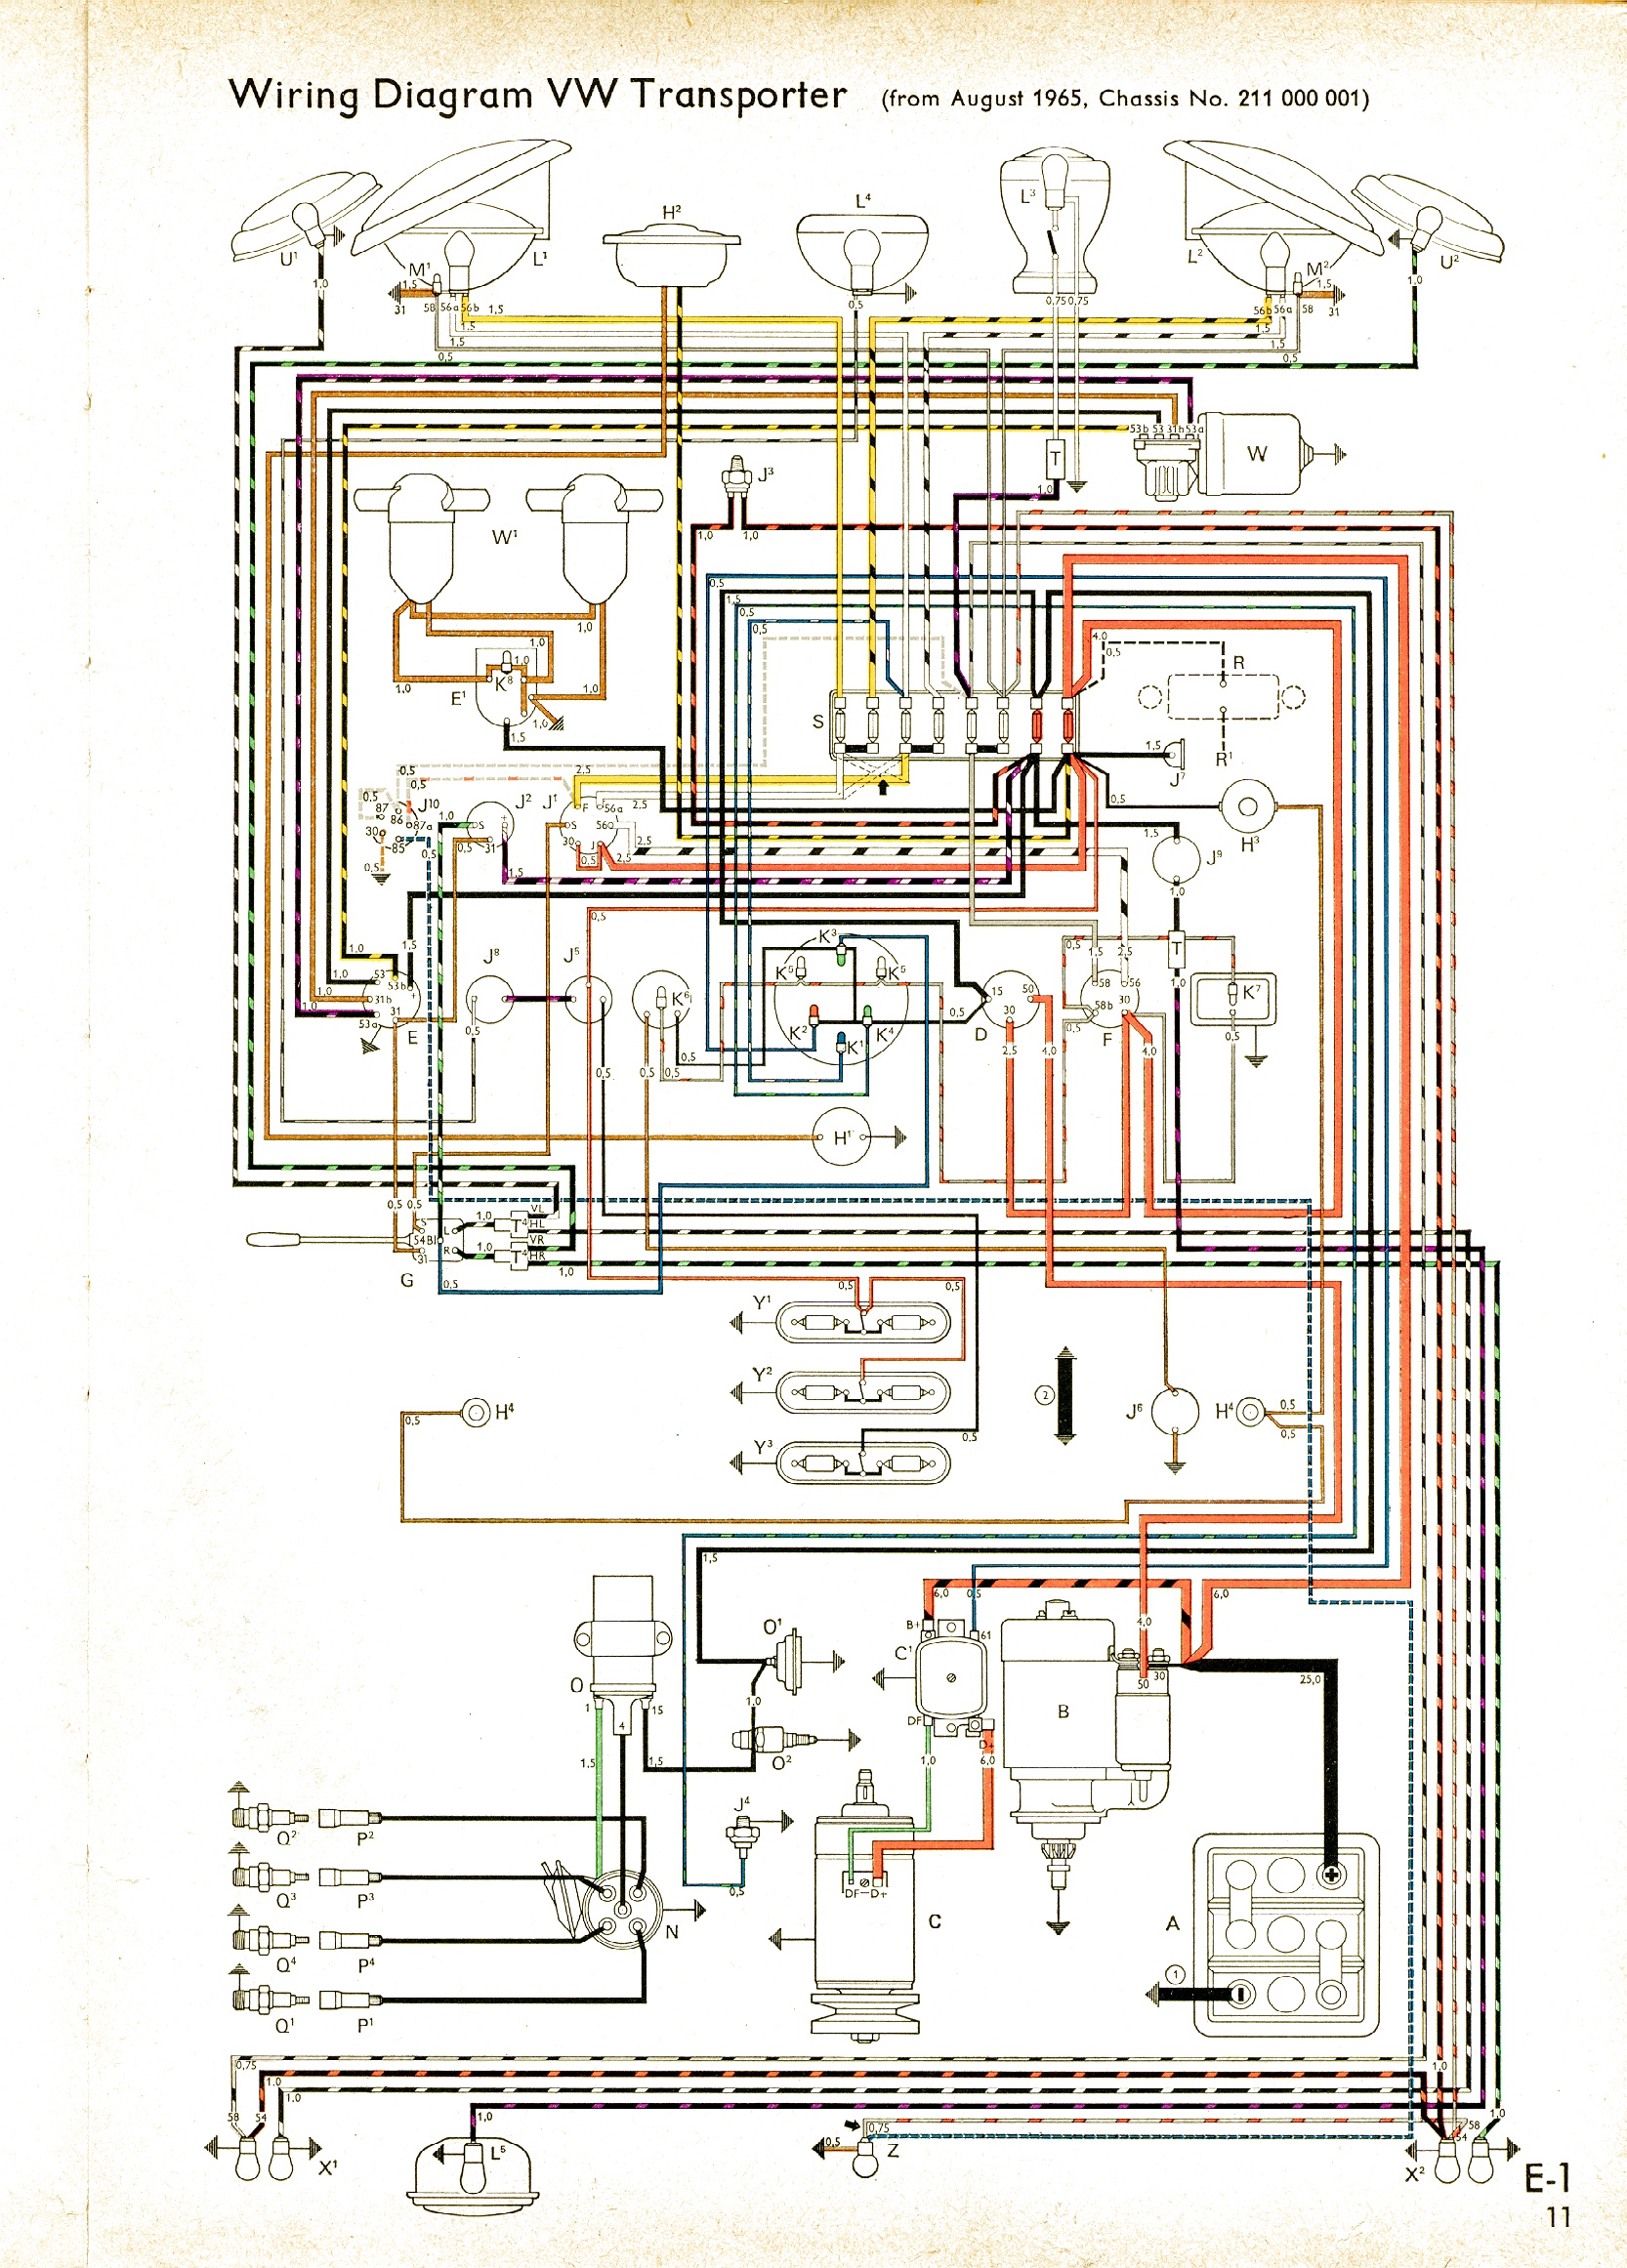 bus 65 bus wiring diagram vw wiring harness diagram \u2022 wiring diagrams j girardin bus wiring diagrams at crackthecode.co